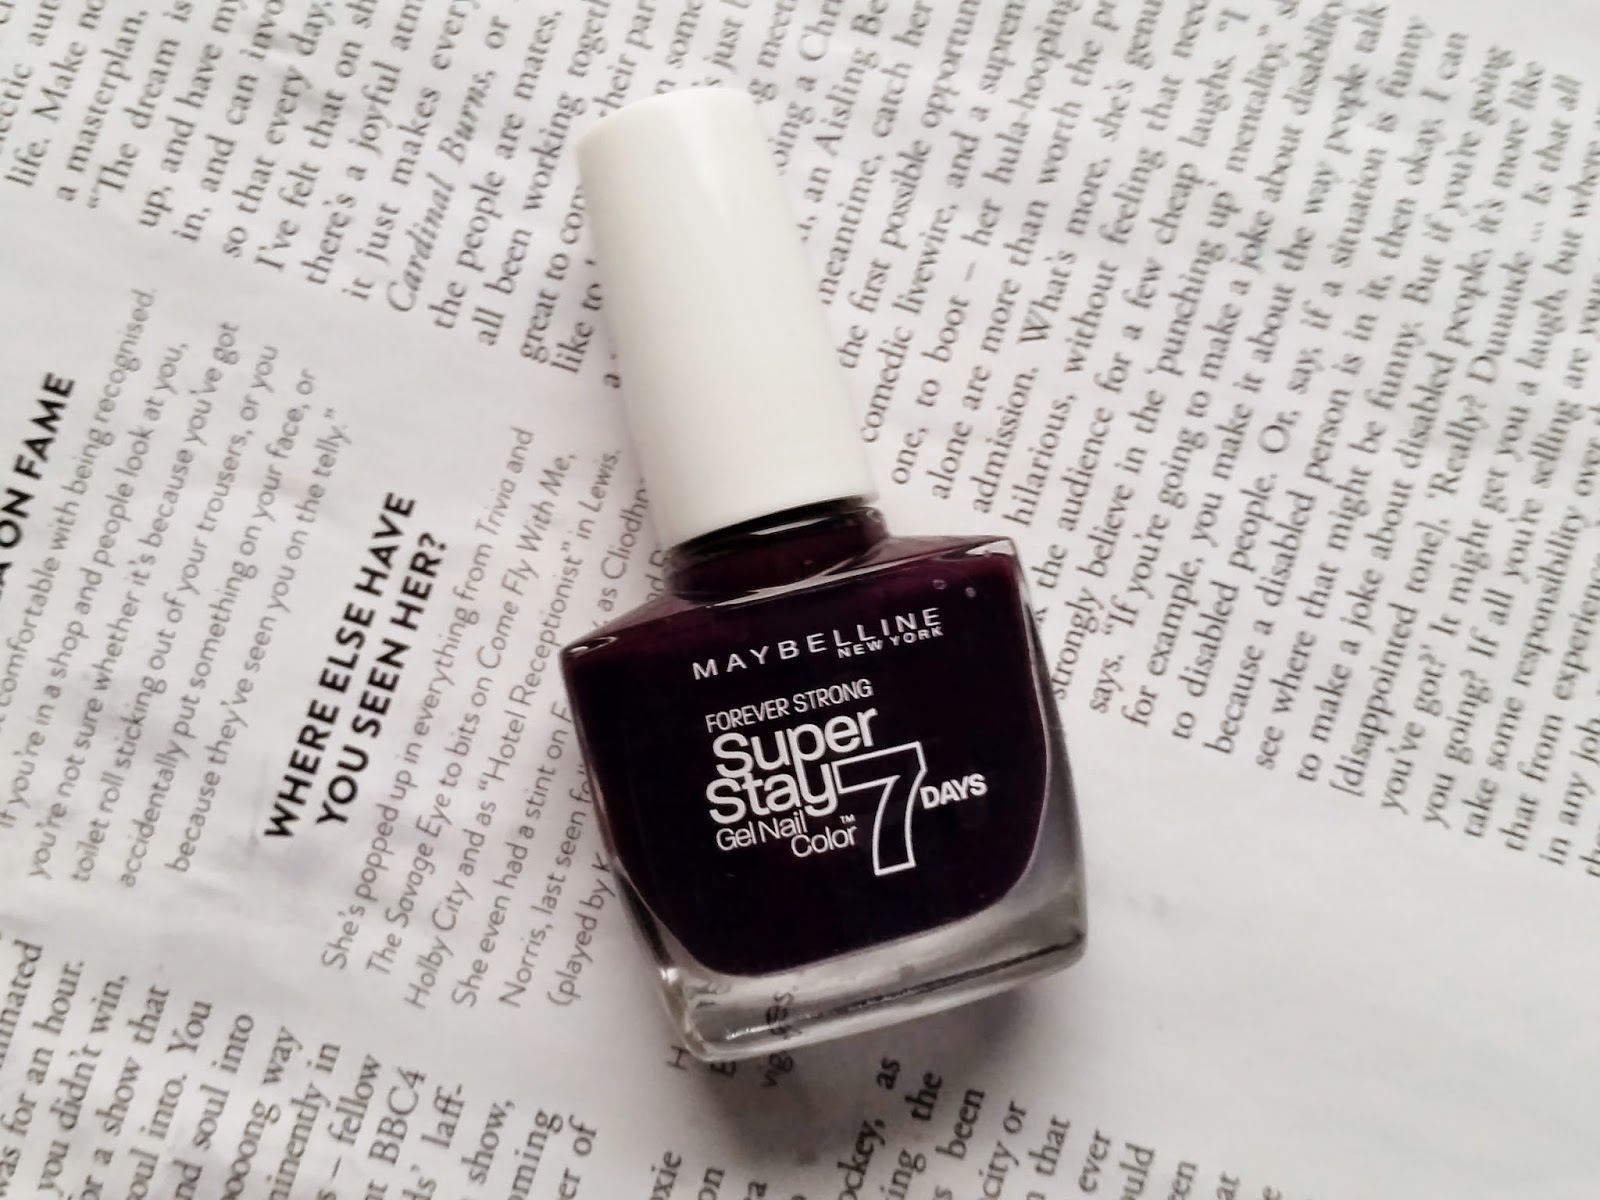 Maybelline SuperStay Gel Polish in Extreme Blackcurrant